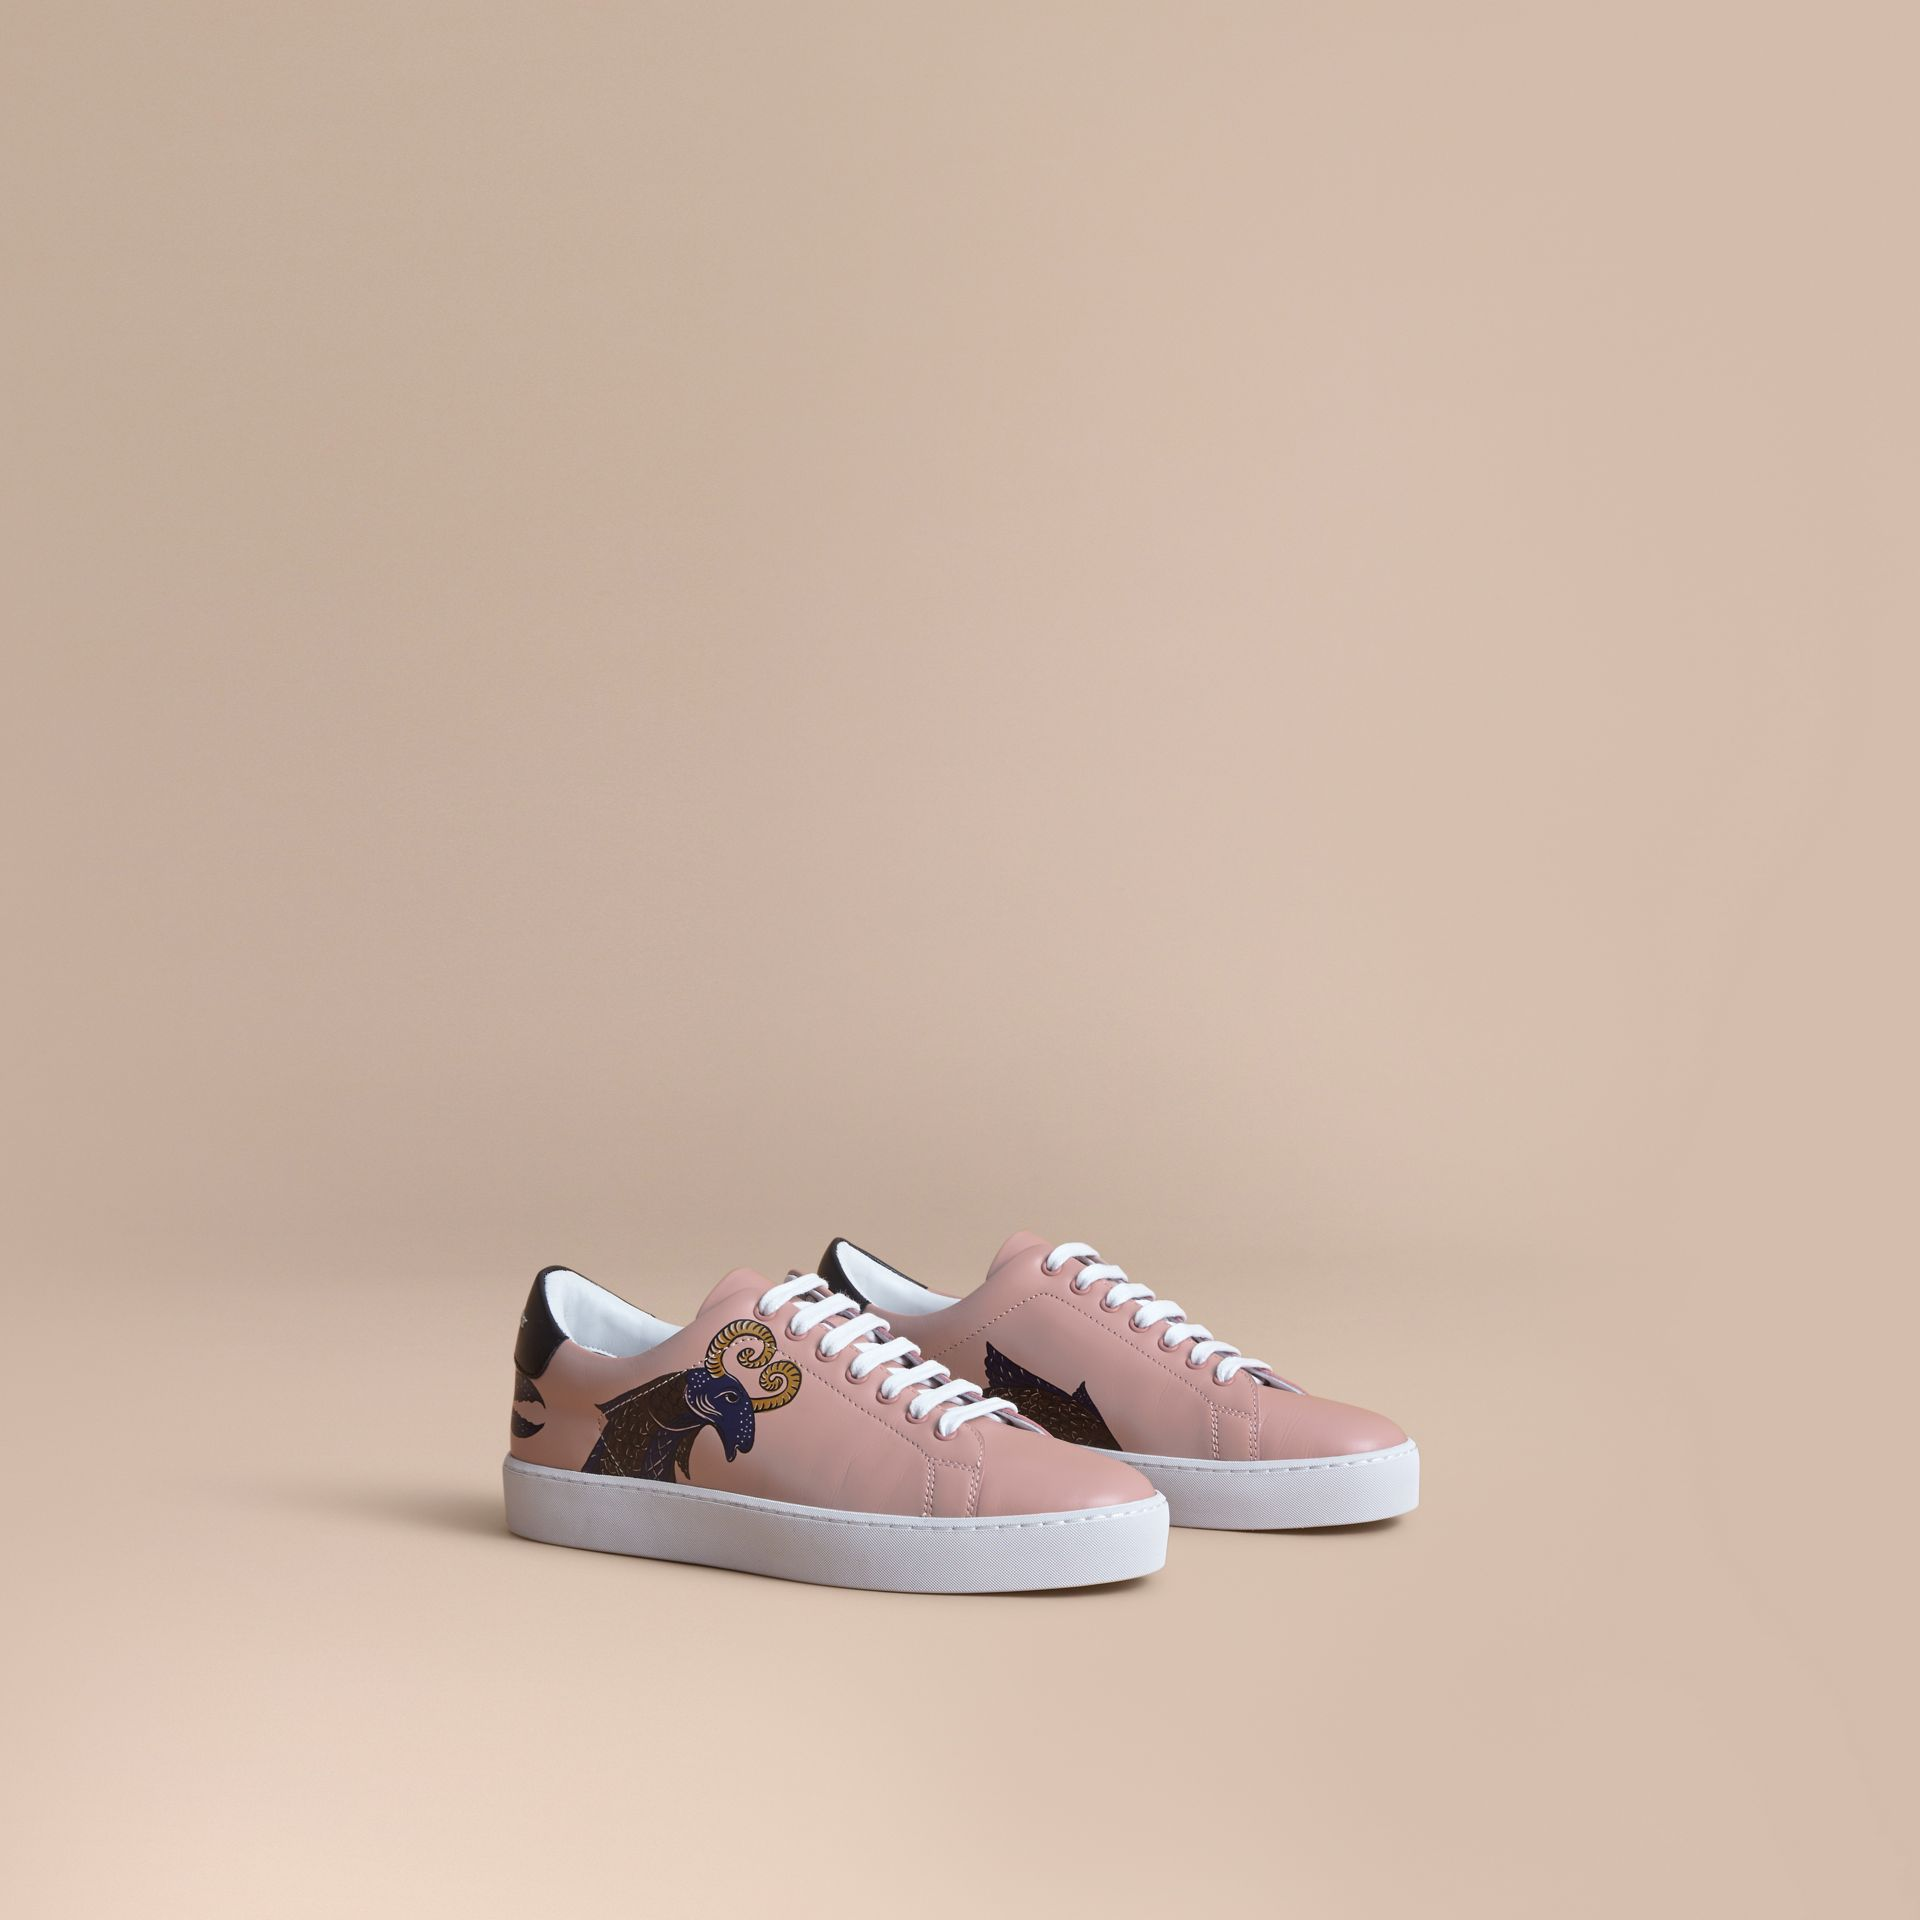 Beasts Print Leather Trainers in Ivory Pink - Women | Burberry - gallery image 1